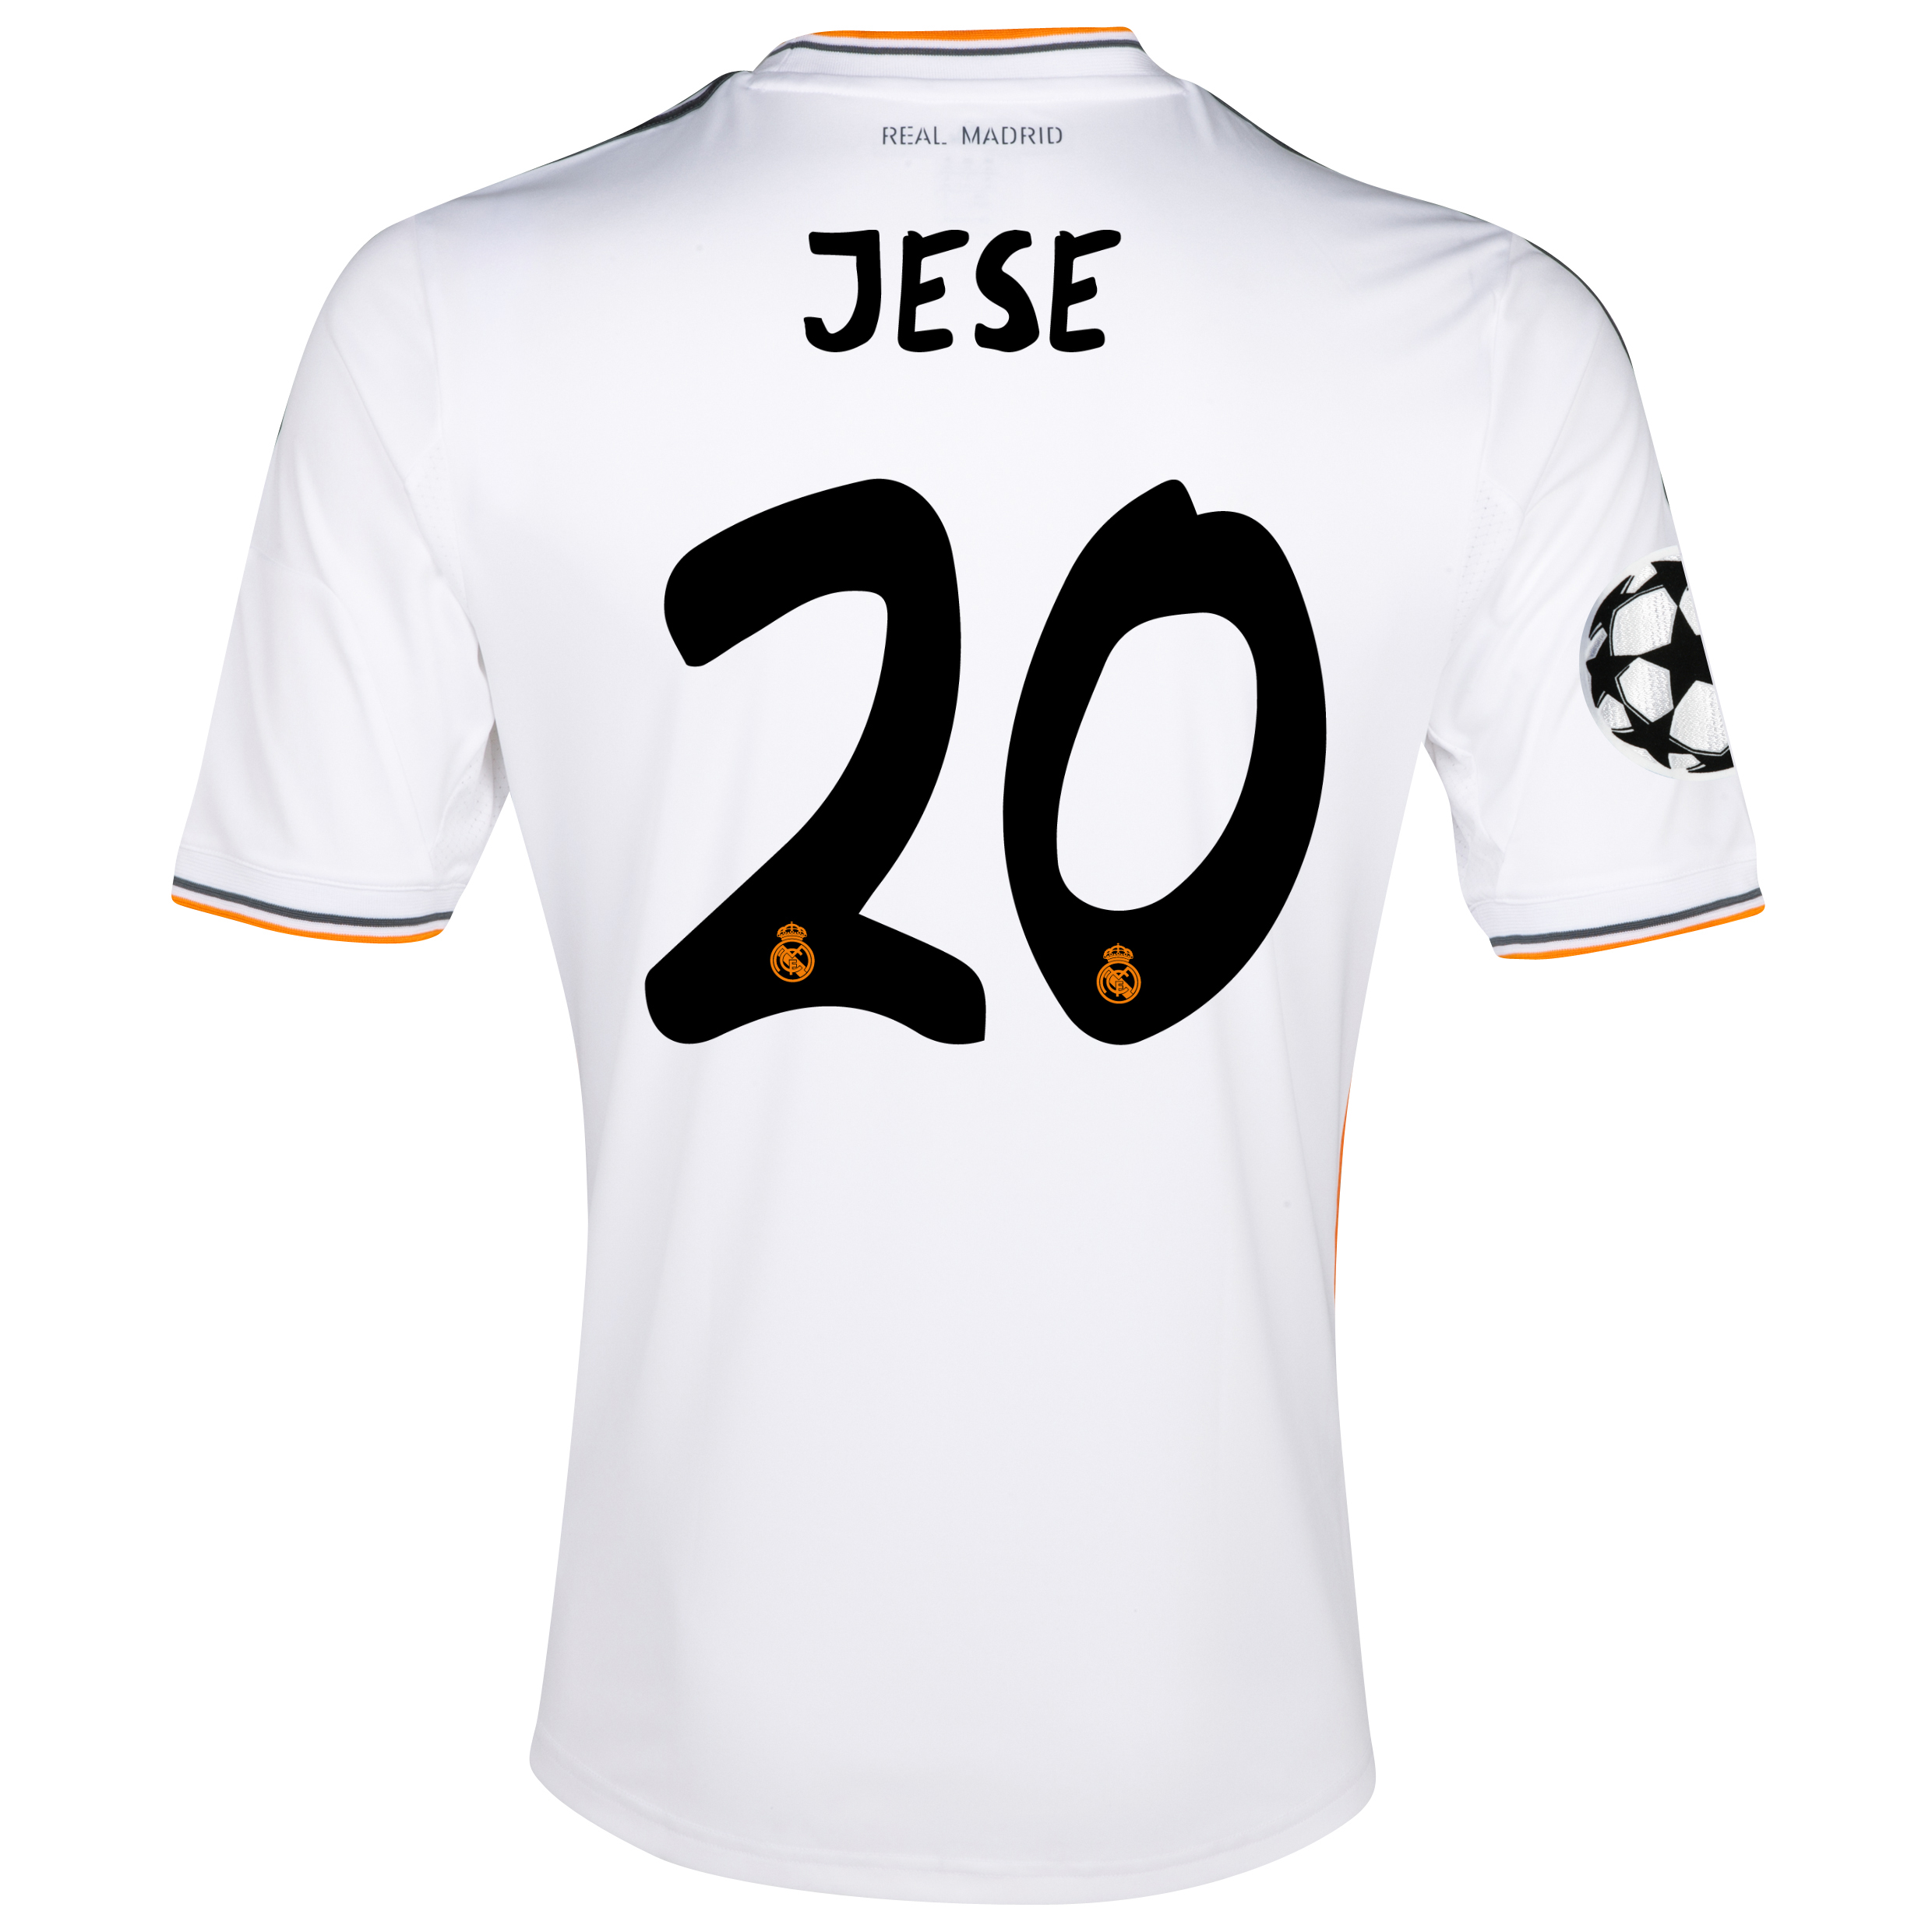 Real Madrid UEFA Champions League Home Shirt 2013/14 - kids with Jese 20 printing